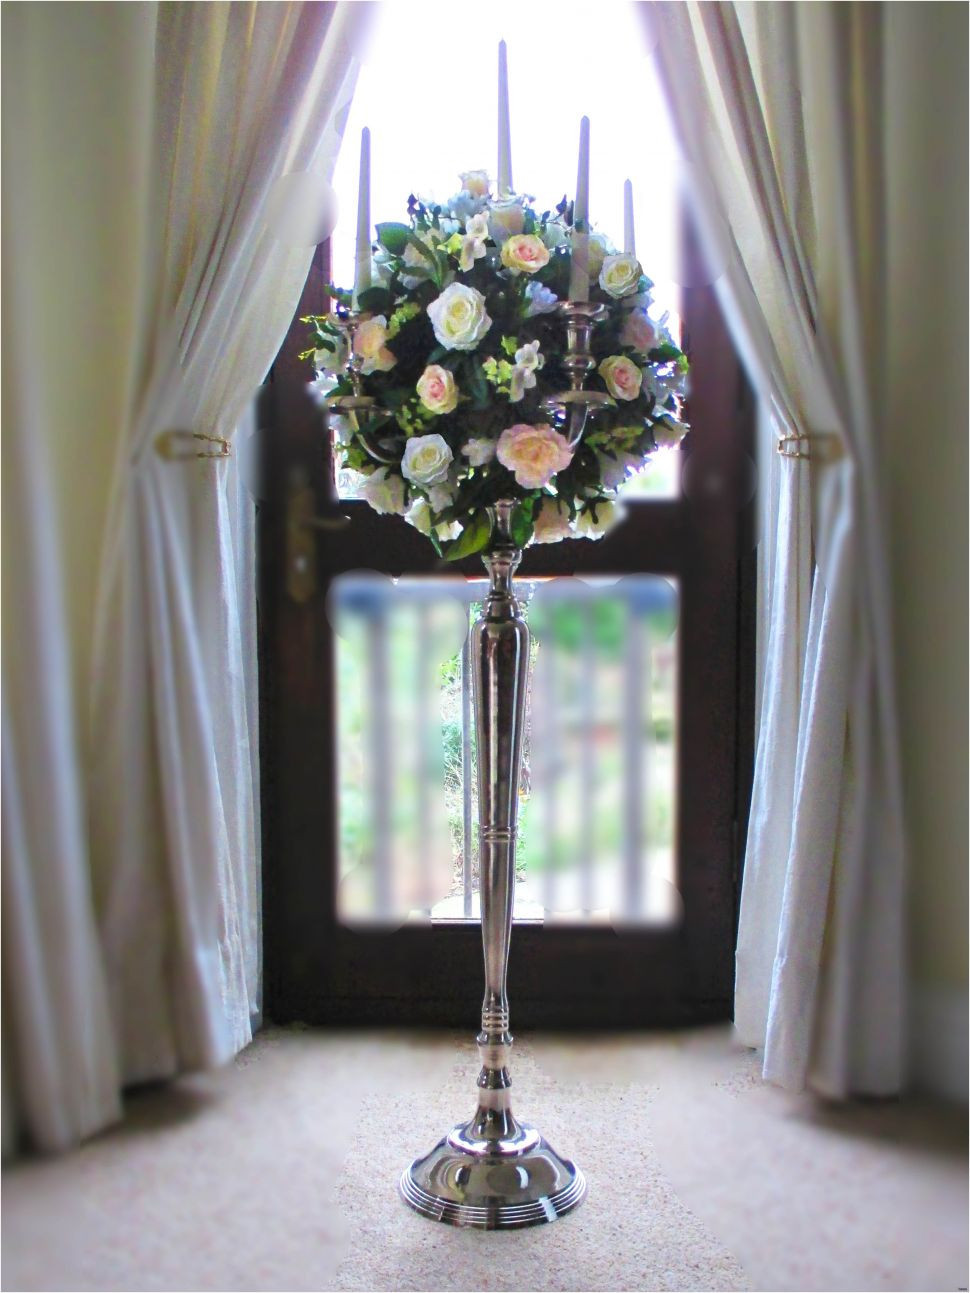 vase with hole for lights of cemetery vases plastic collection vases grave flower cemetery vase inside cemetery vases plastic pictures flower bouquet dreaded cheap wedding bouquets packages 5397h vases of cemetery vases